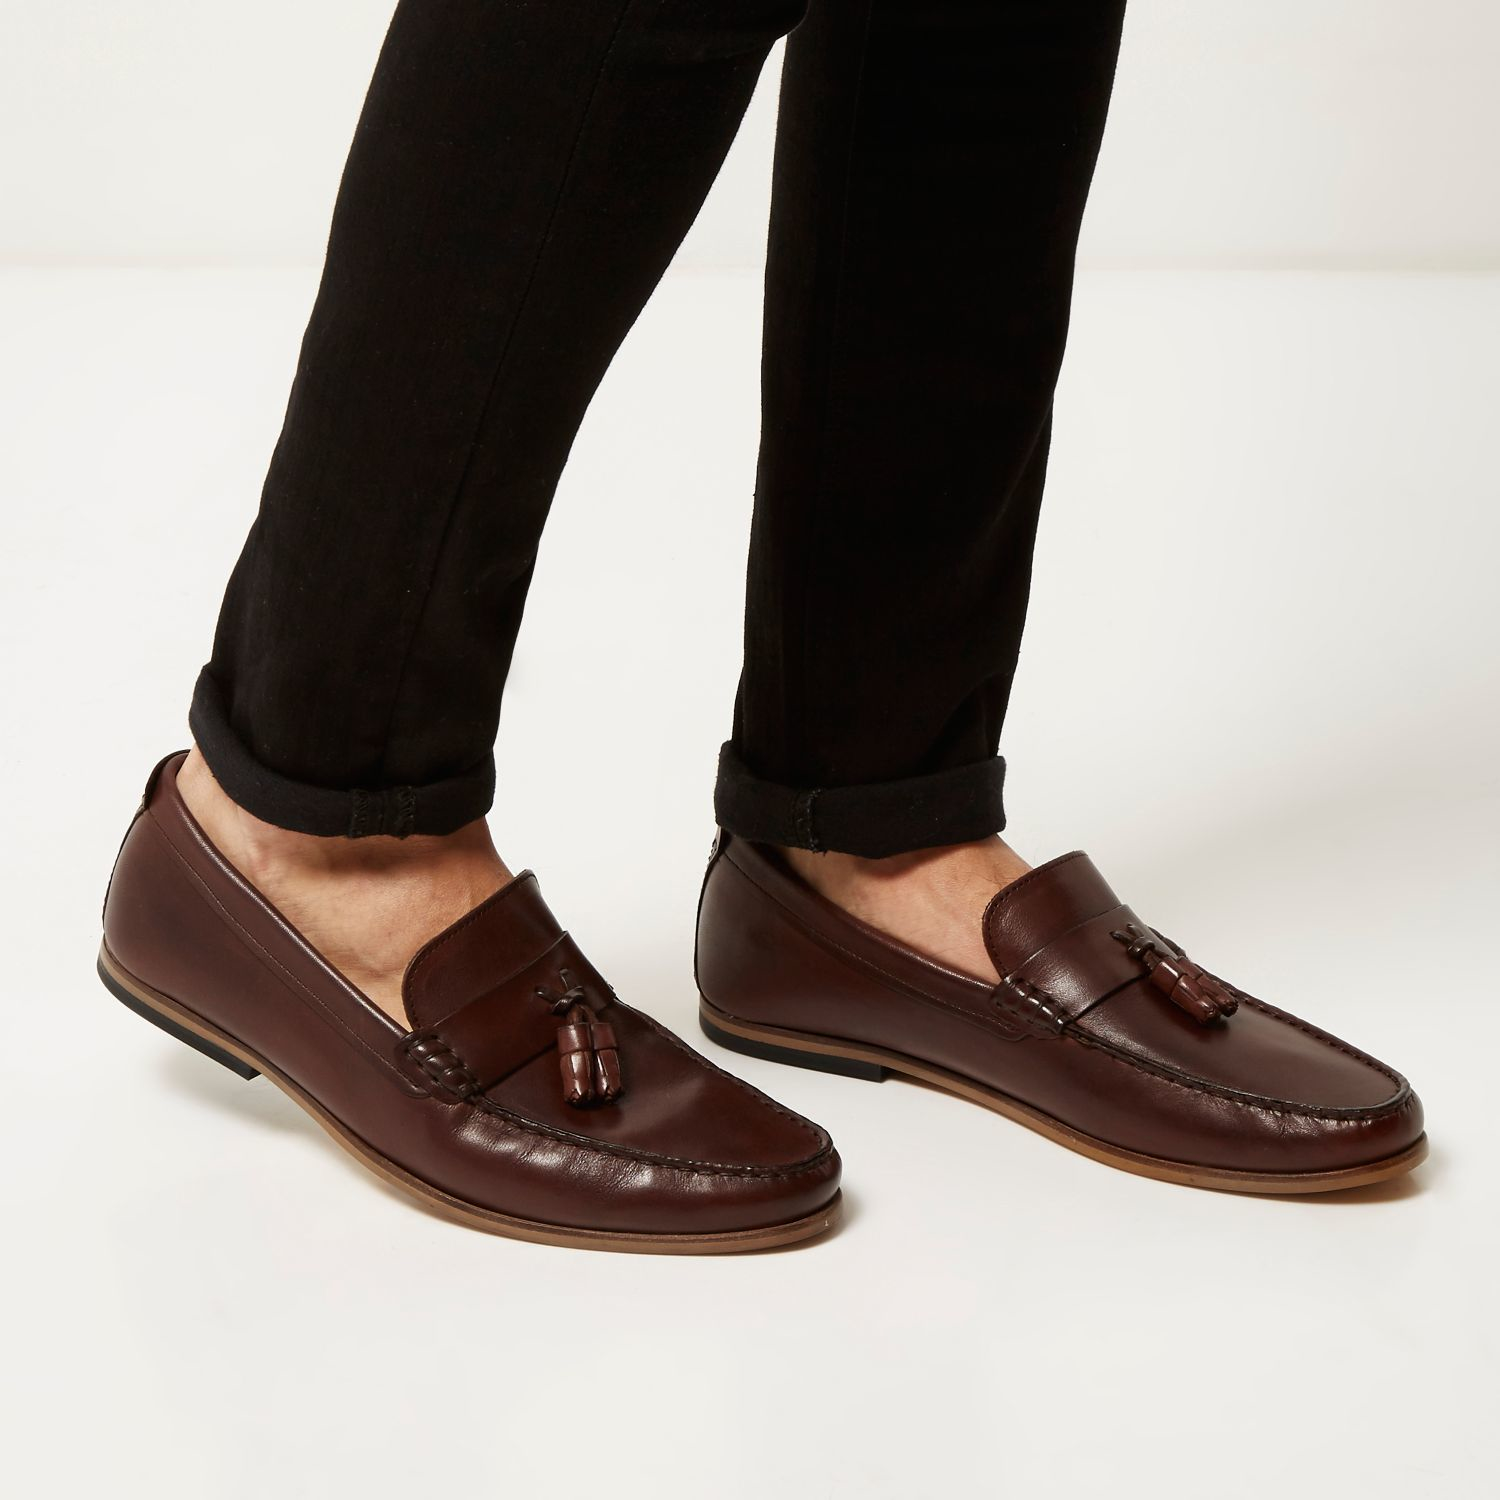 76b2e457bc4 Lyst River Island Dark Brown Leather Tassel Loafers In Brown For Men